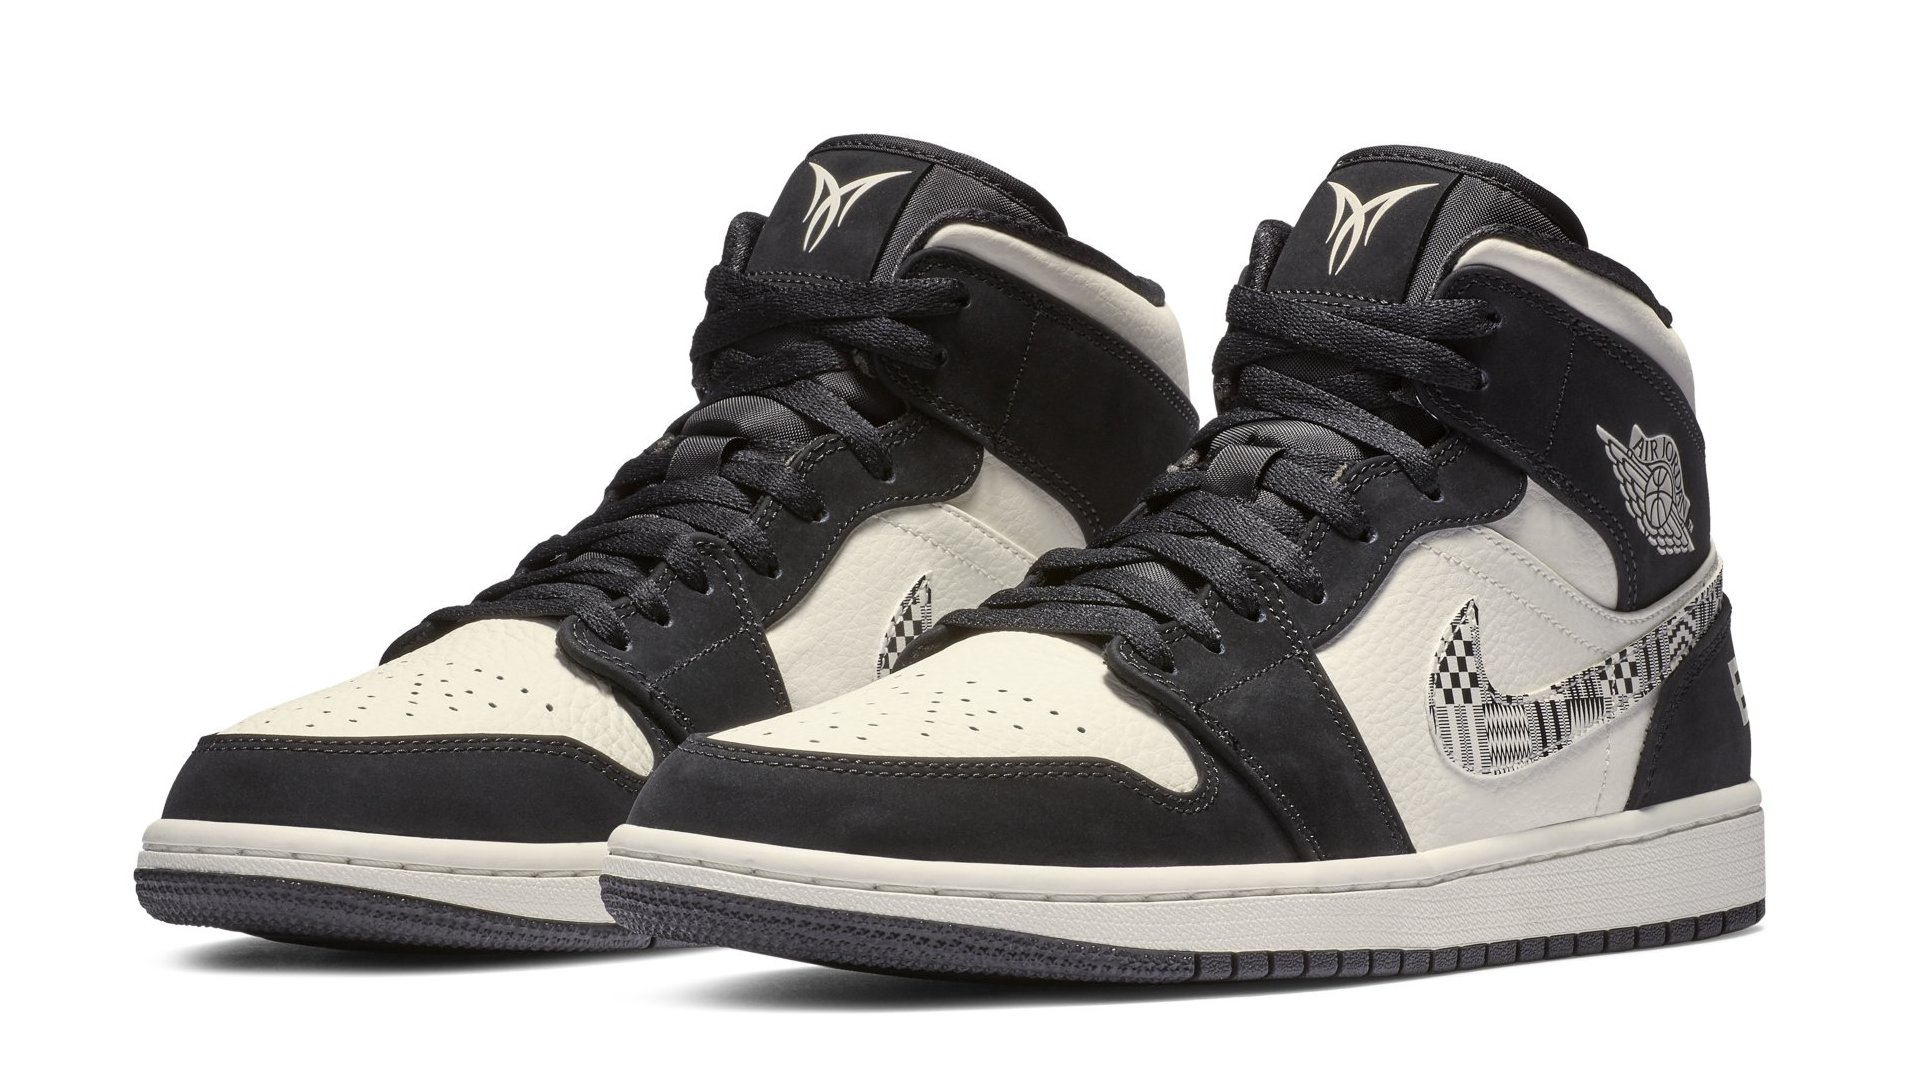 pretty nice a8e50 1b239 Air Jordan 1 Mid  Equality  852542-010 Release Date   Sole Collector